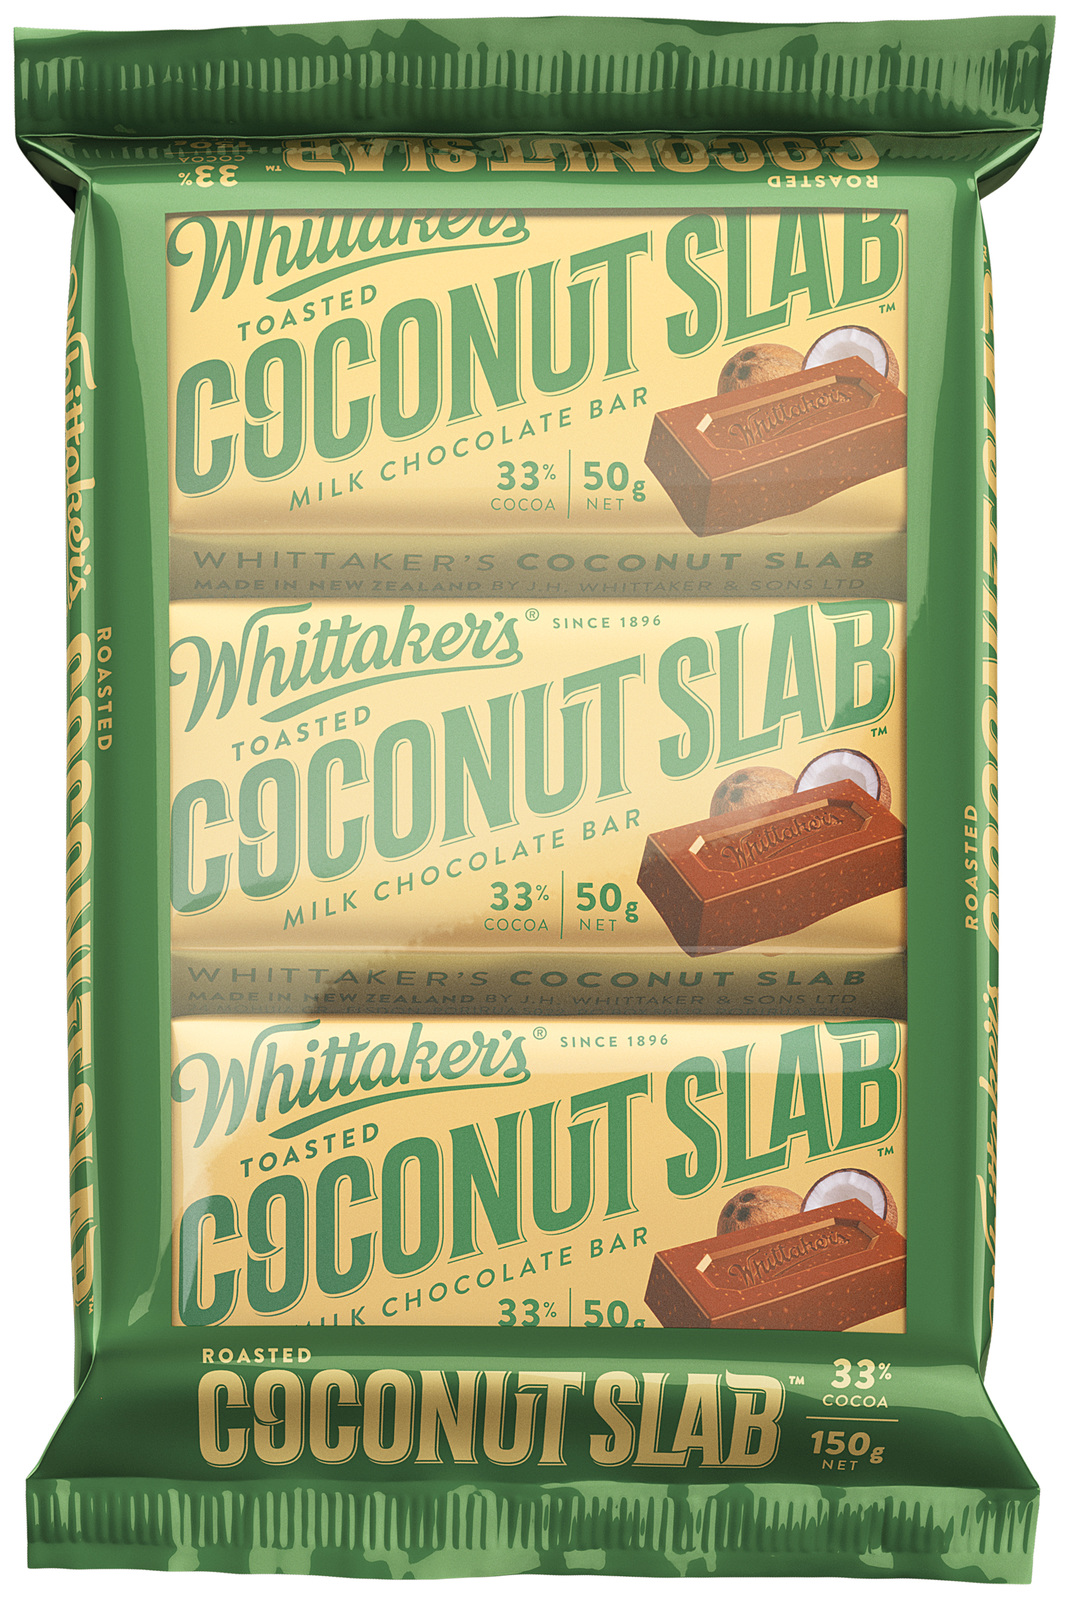 Whittaker's Toasted Coconut Slab (3 Pack) image